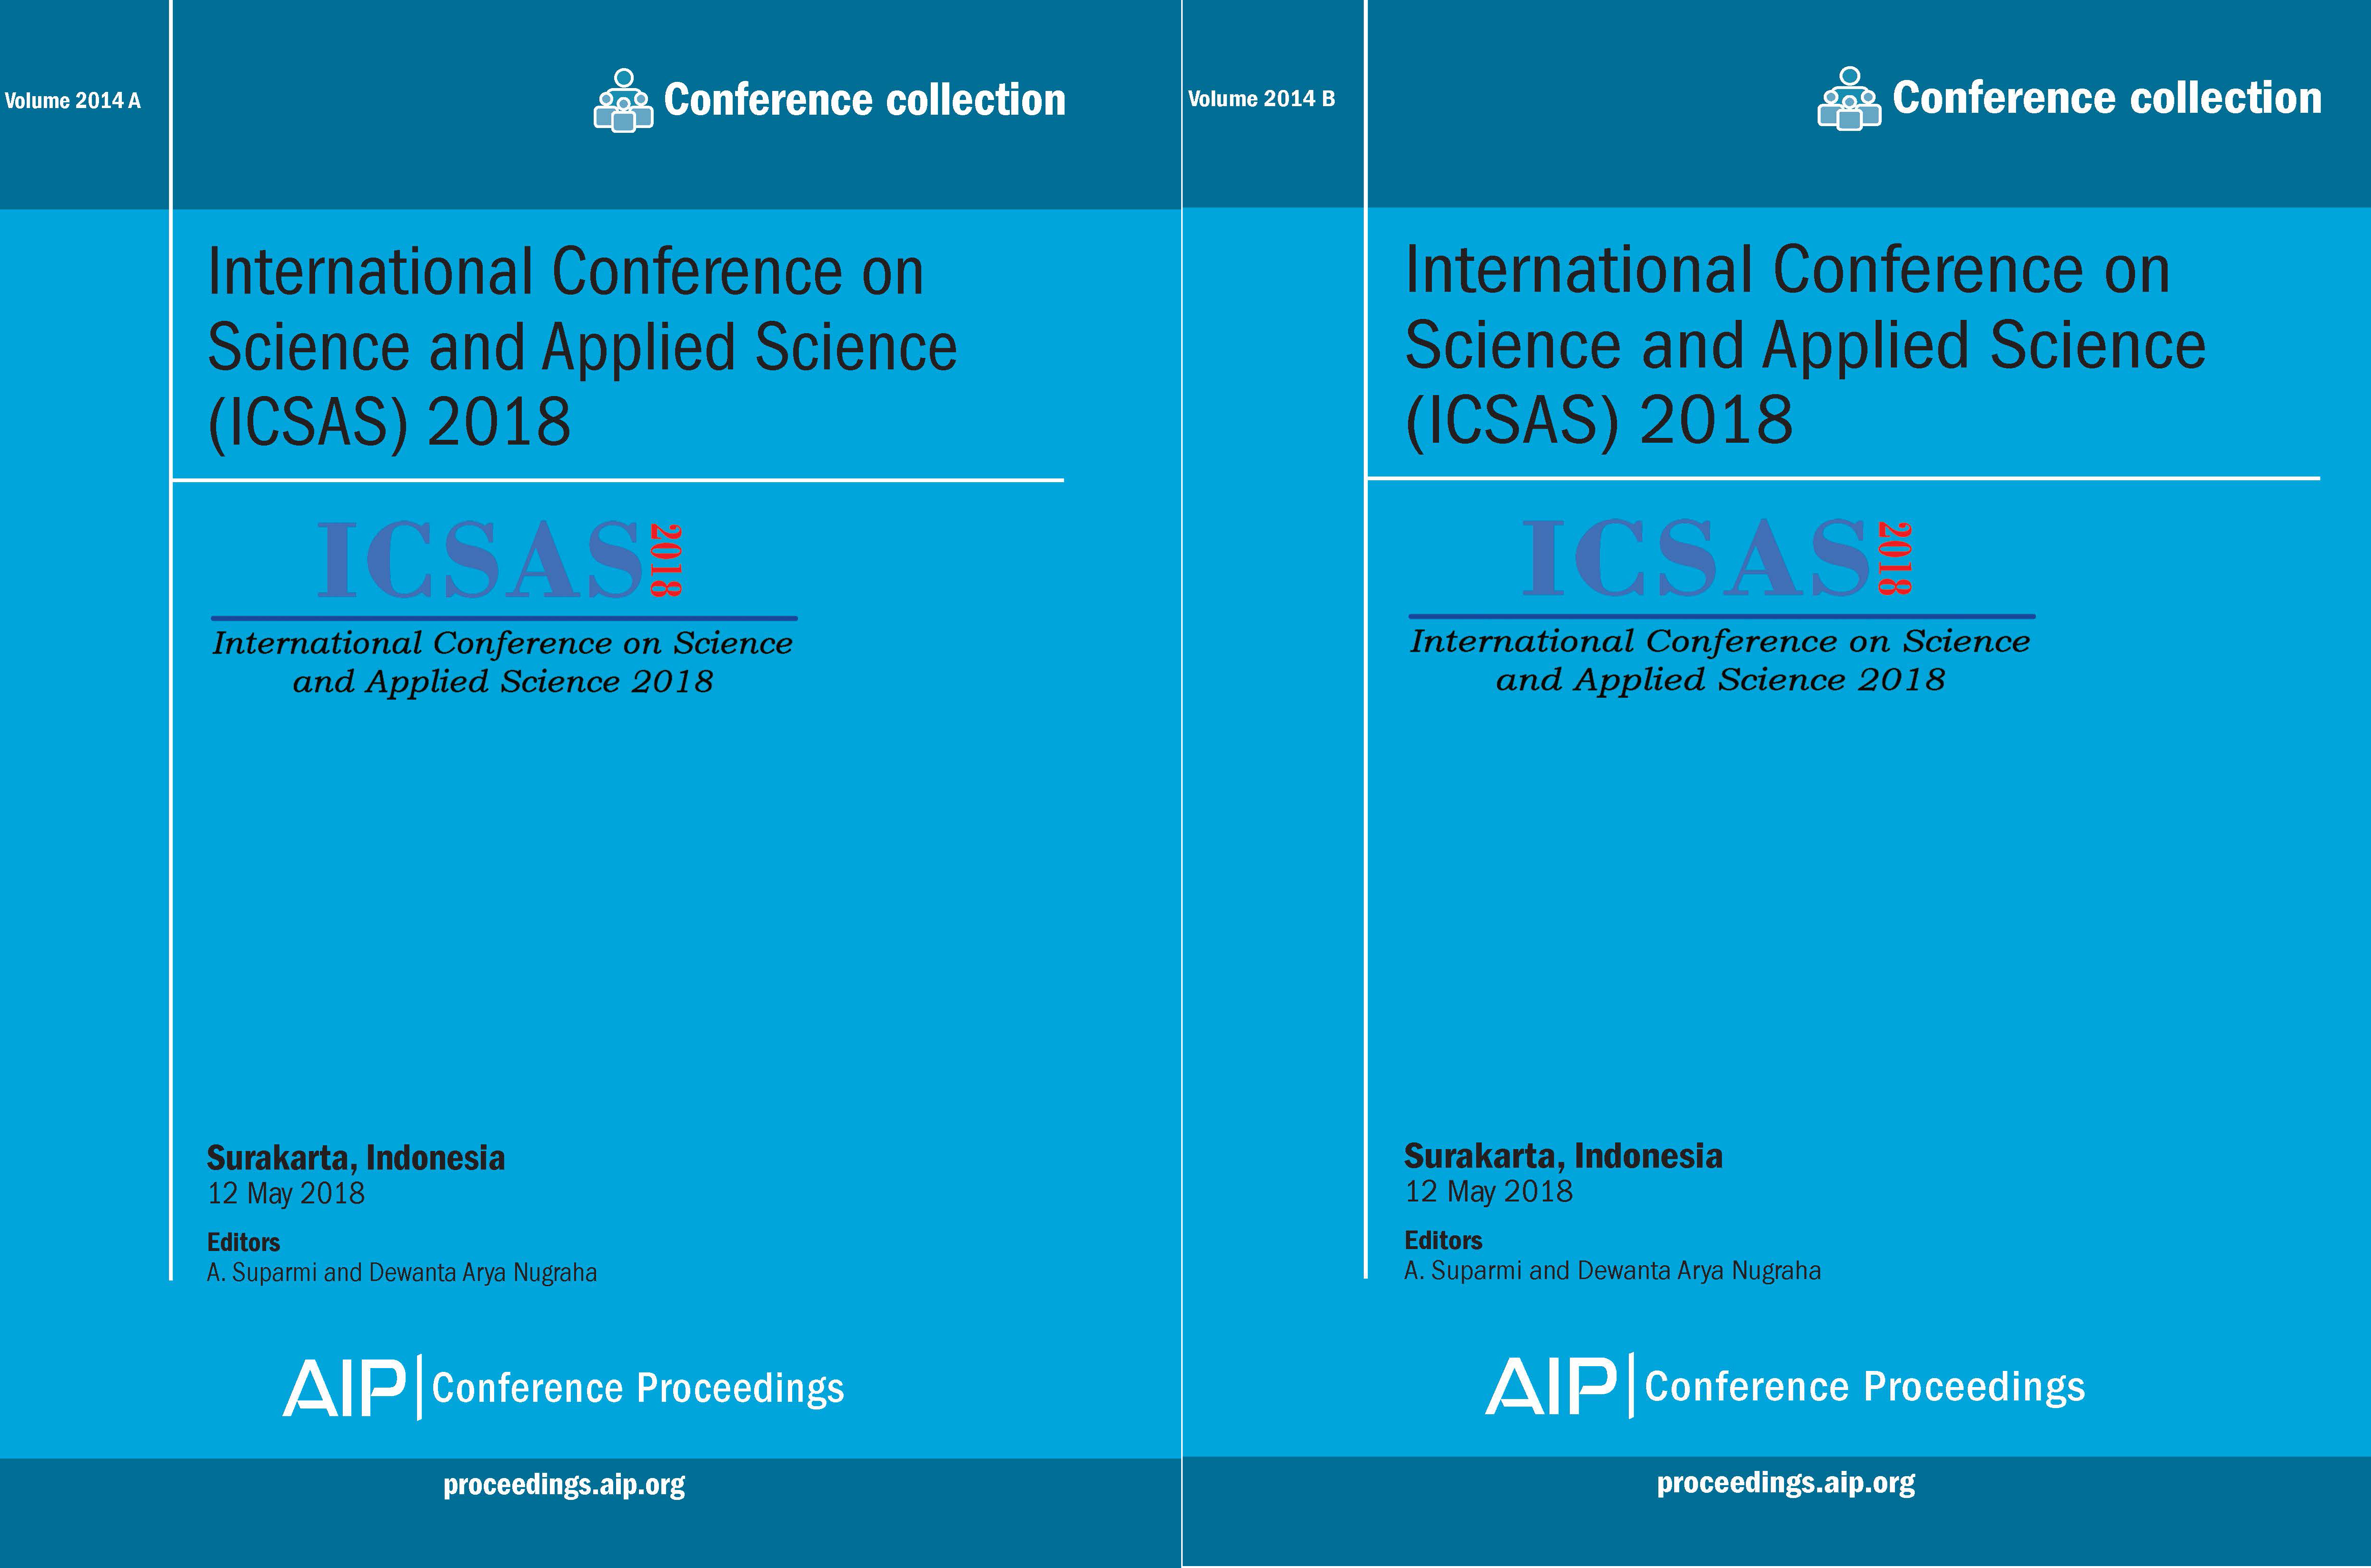 Volume 2014: International Conference on Science and Applied